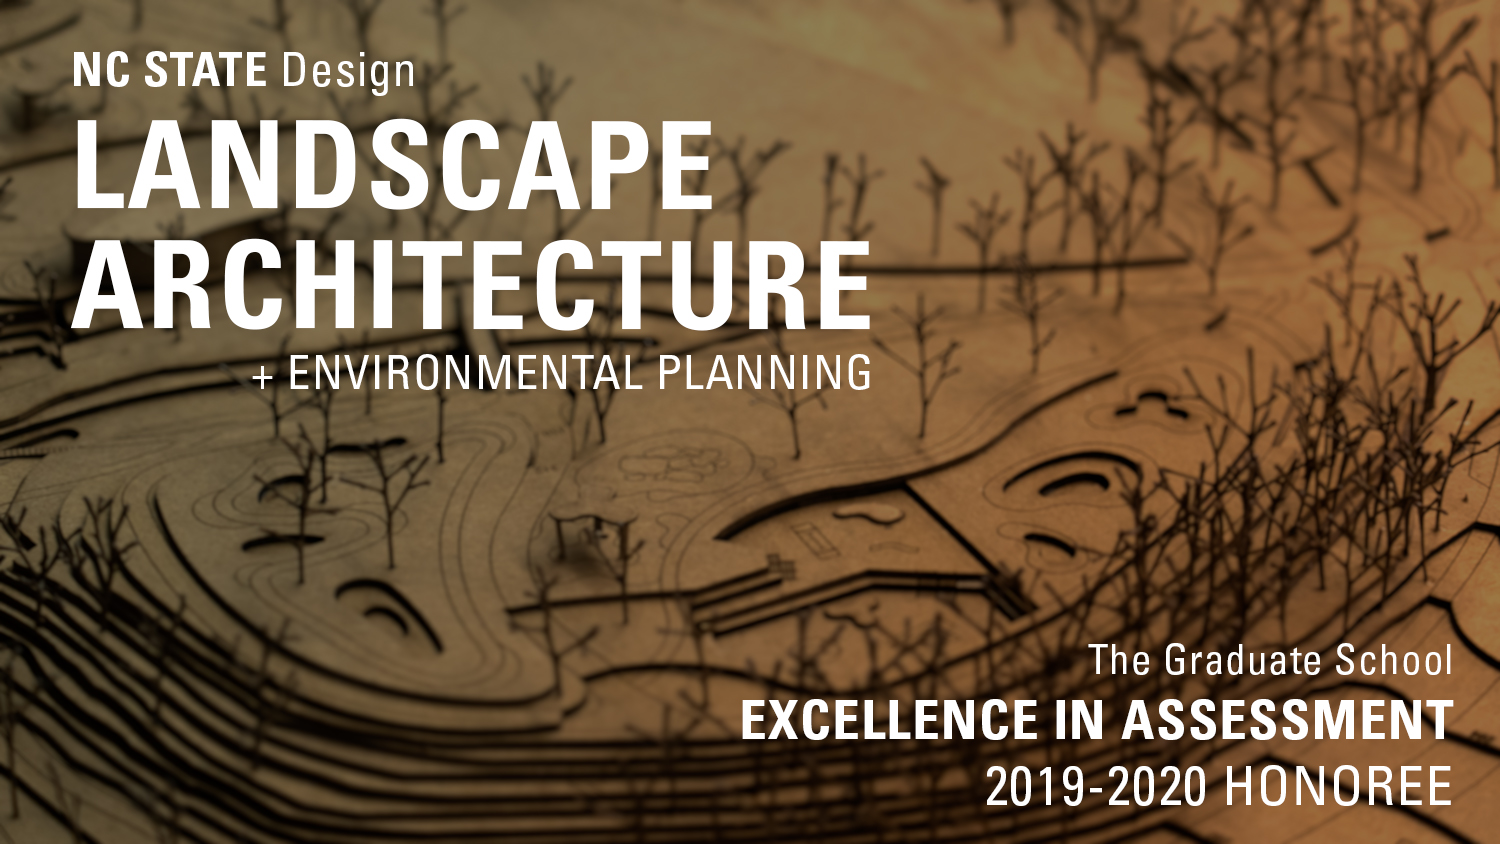 excellence in assessment award for landscape architecture